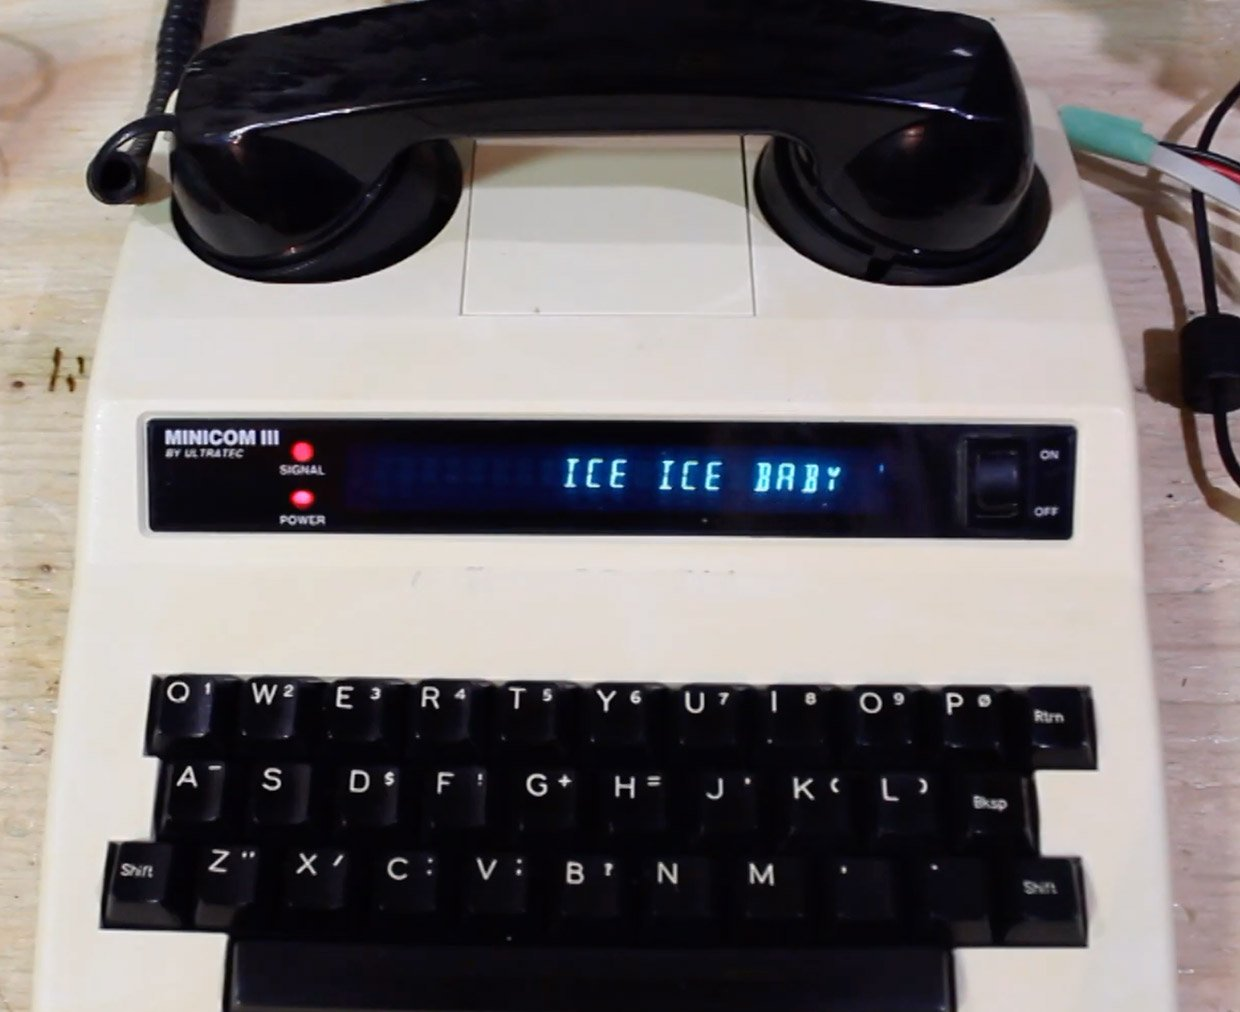 bd594: Ice Ice Baby (f/DECtalk)